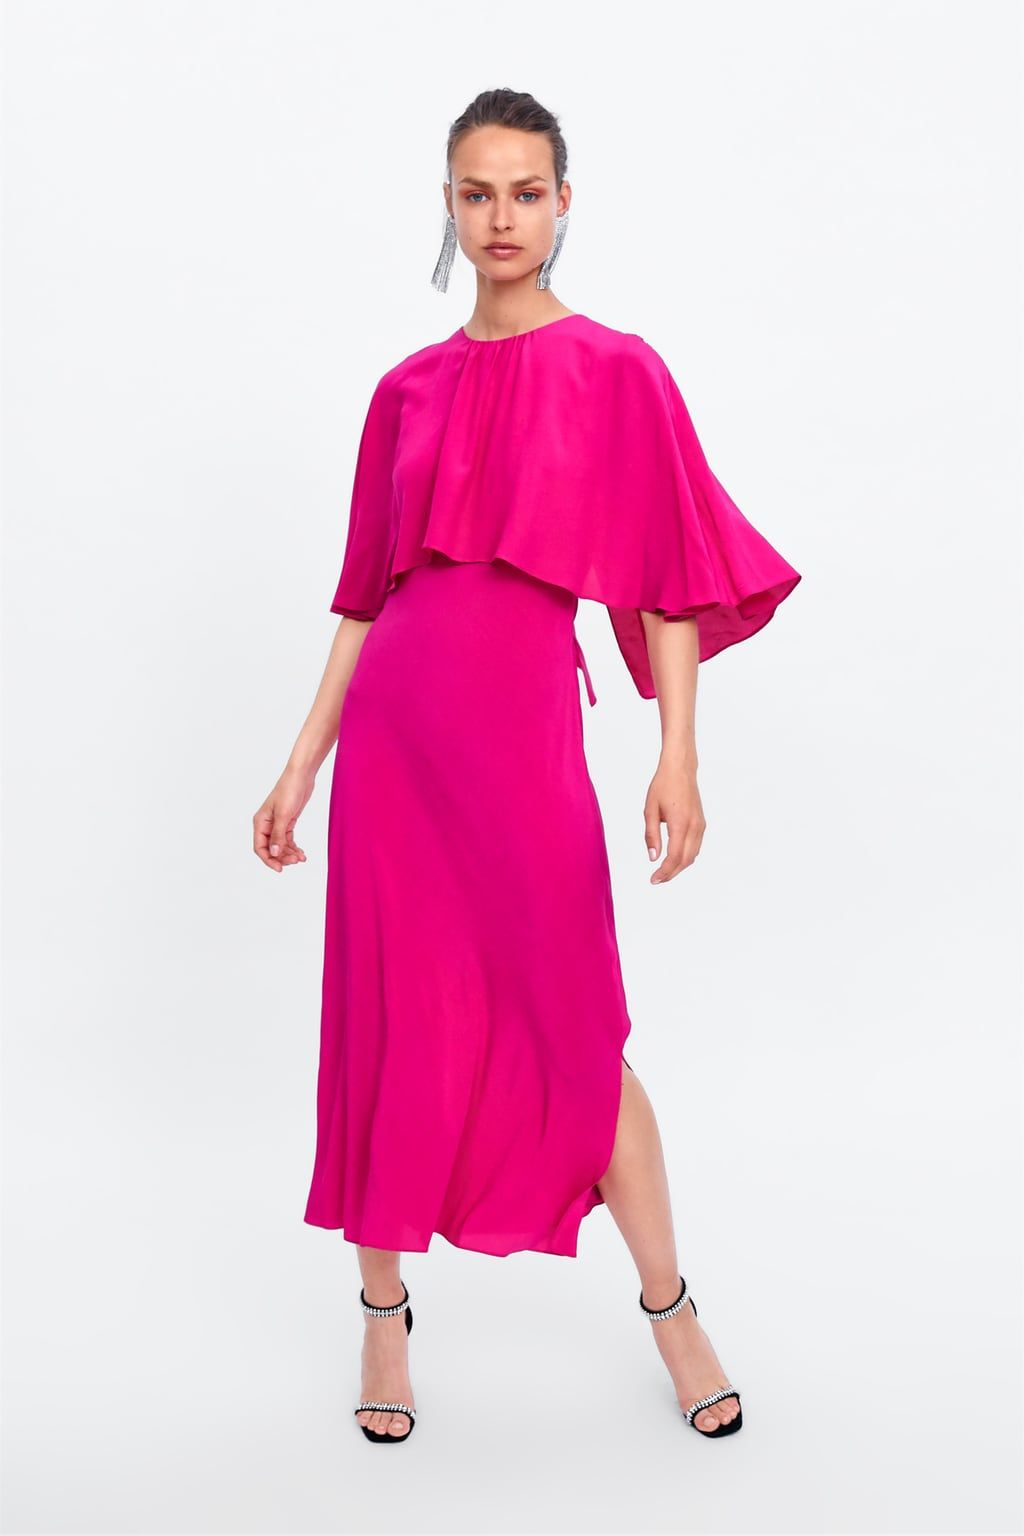 c4f2e400 Flowy dress with cape in 2019 | crave - clothes - 2018 | Cape dress ...